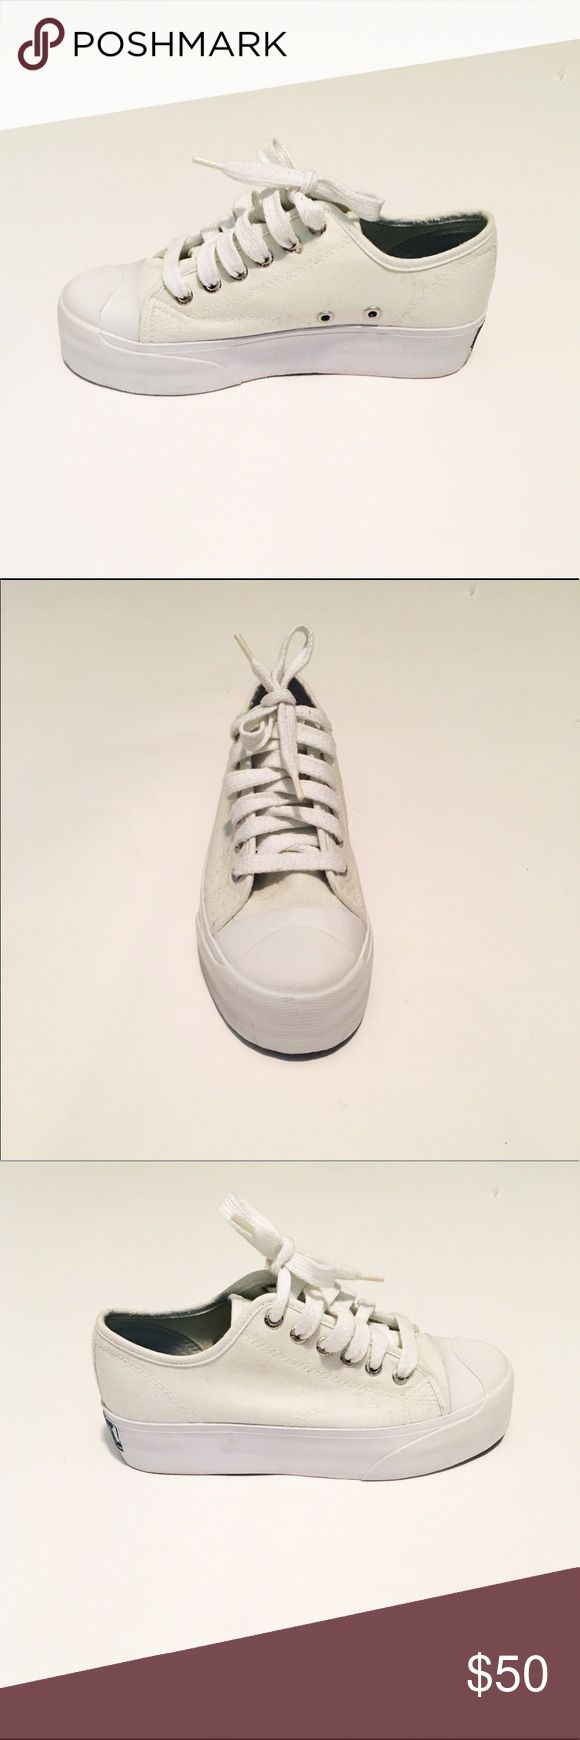 Platform tennis shoes NWOT White platform tennis shoes. Size 6. These are brand new without tags!! Super cute. Sideout Shoes Sneakers